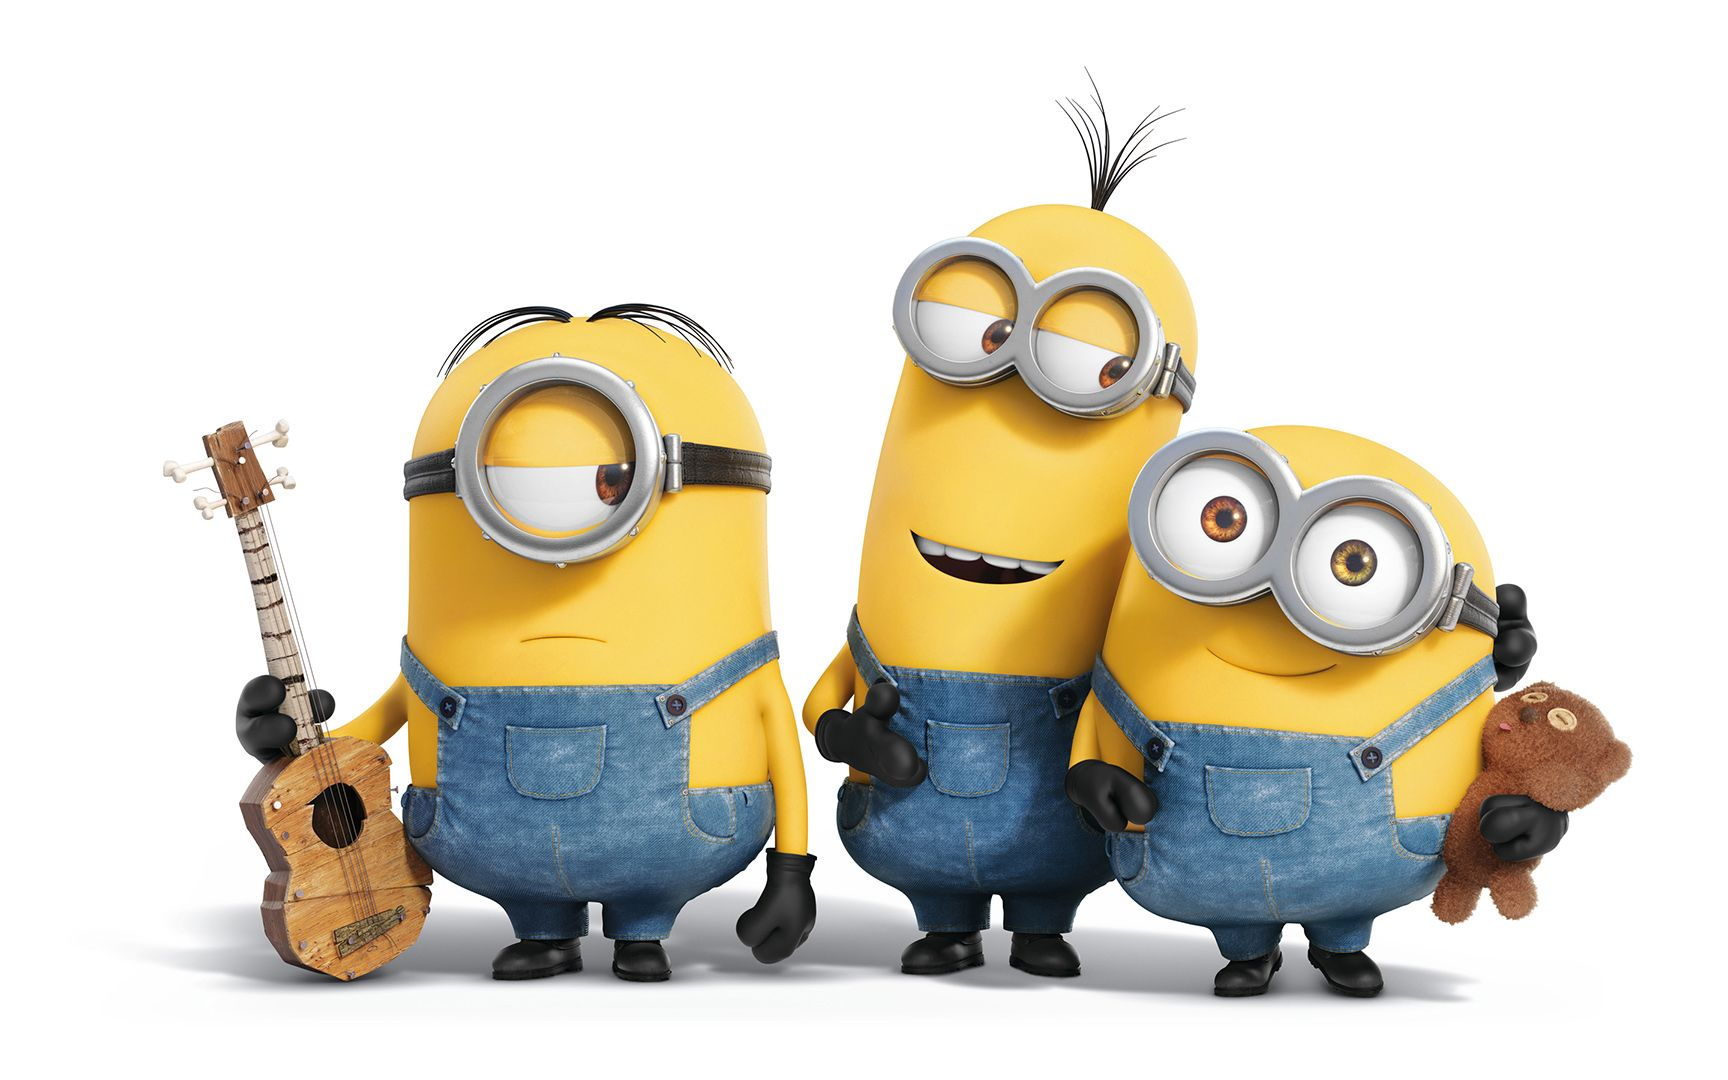 Animated Hd Wallpapers For Laptop Images 30 Hd Wallpapers Buzz Hd Wallpapers For Laptop Minion Wallpaper Hd Minions Wallpaper